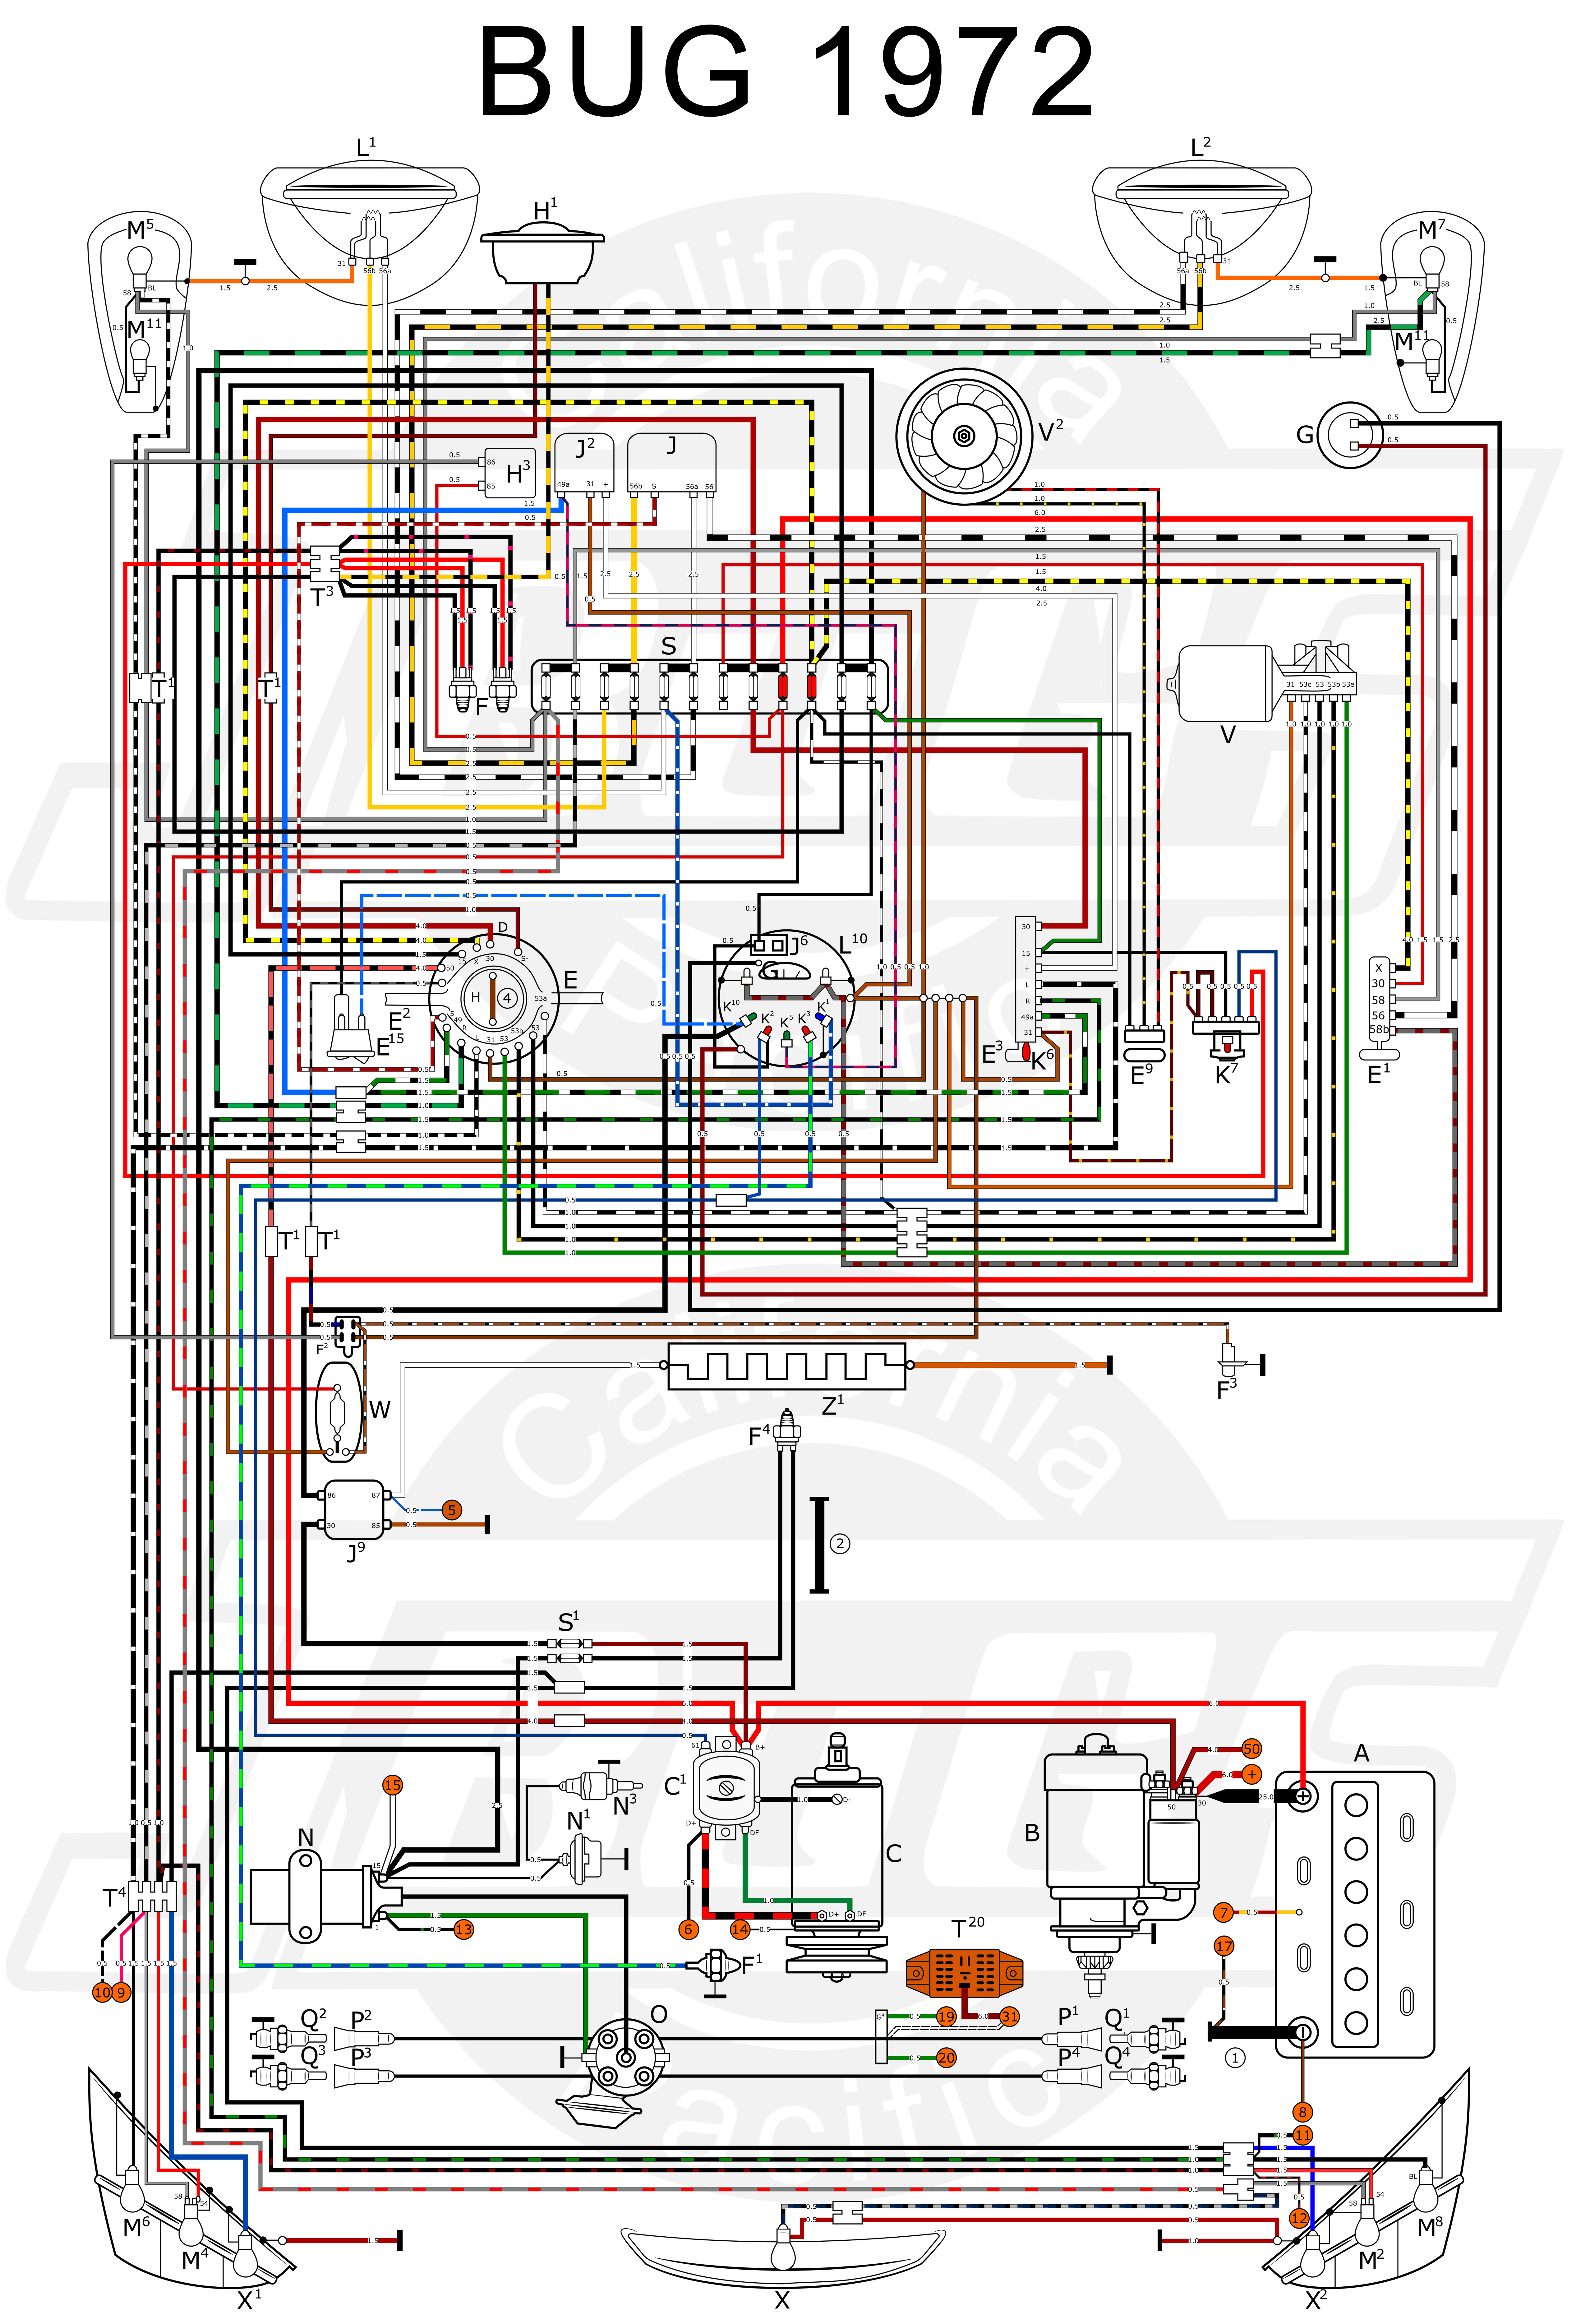 1973 Vw Super Beetle Wiring Diagram Gallery